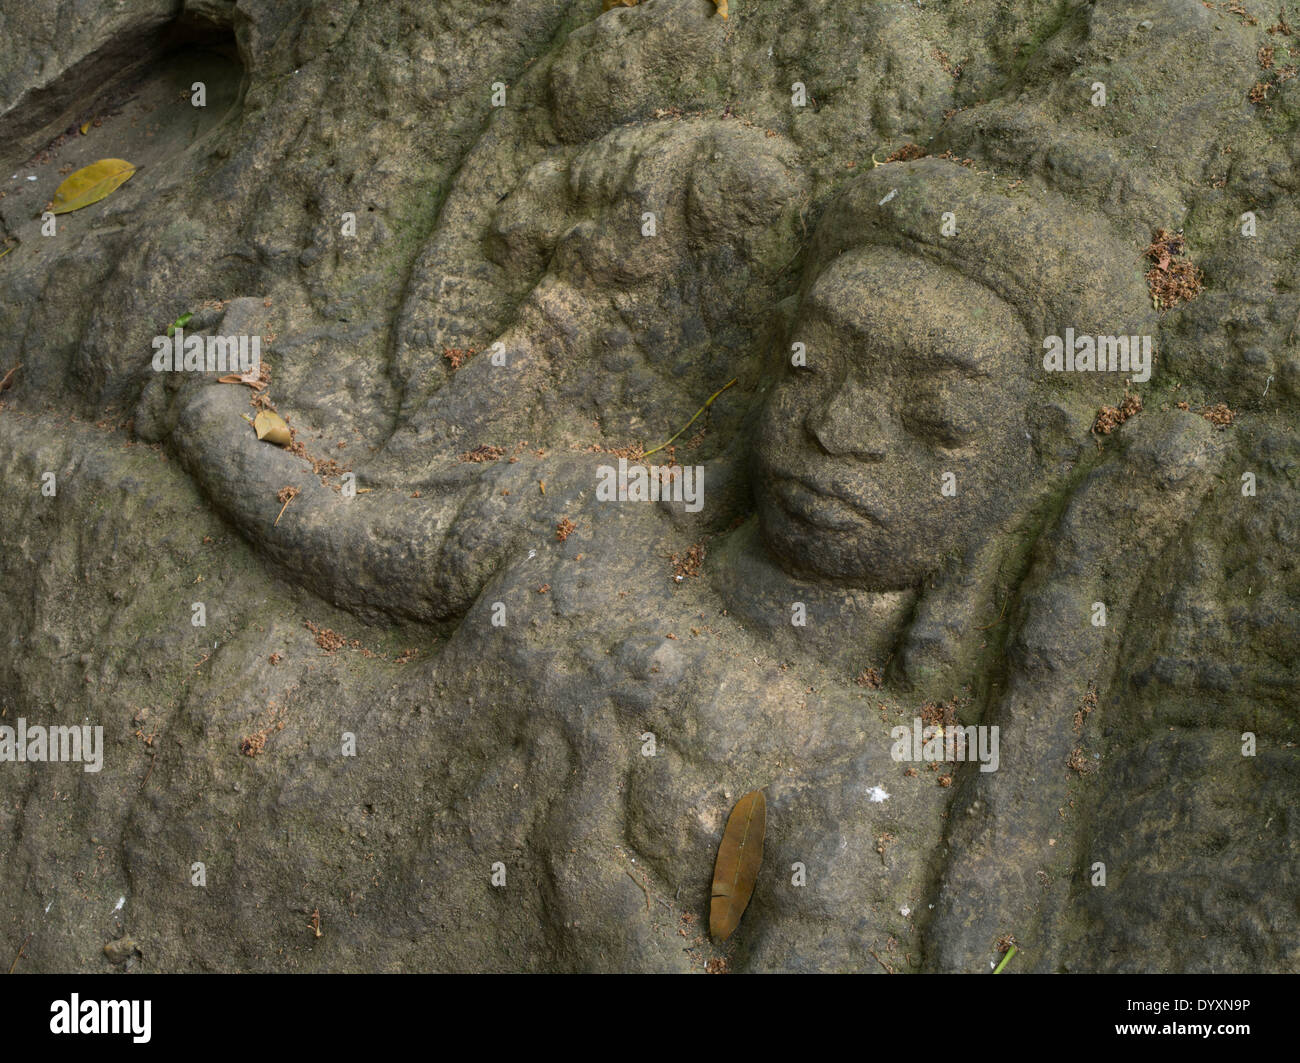 Kbal Spean carvings in the riverbed northeast of Angkor. Siem Reap, Cambodia - Stock Image